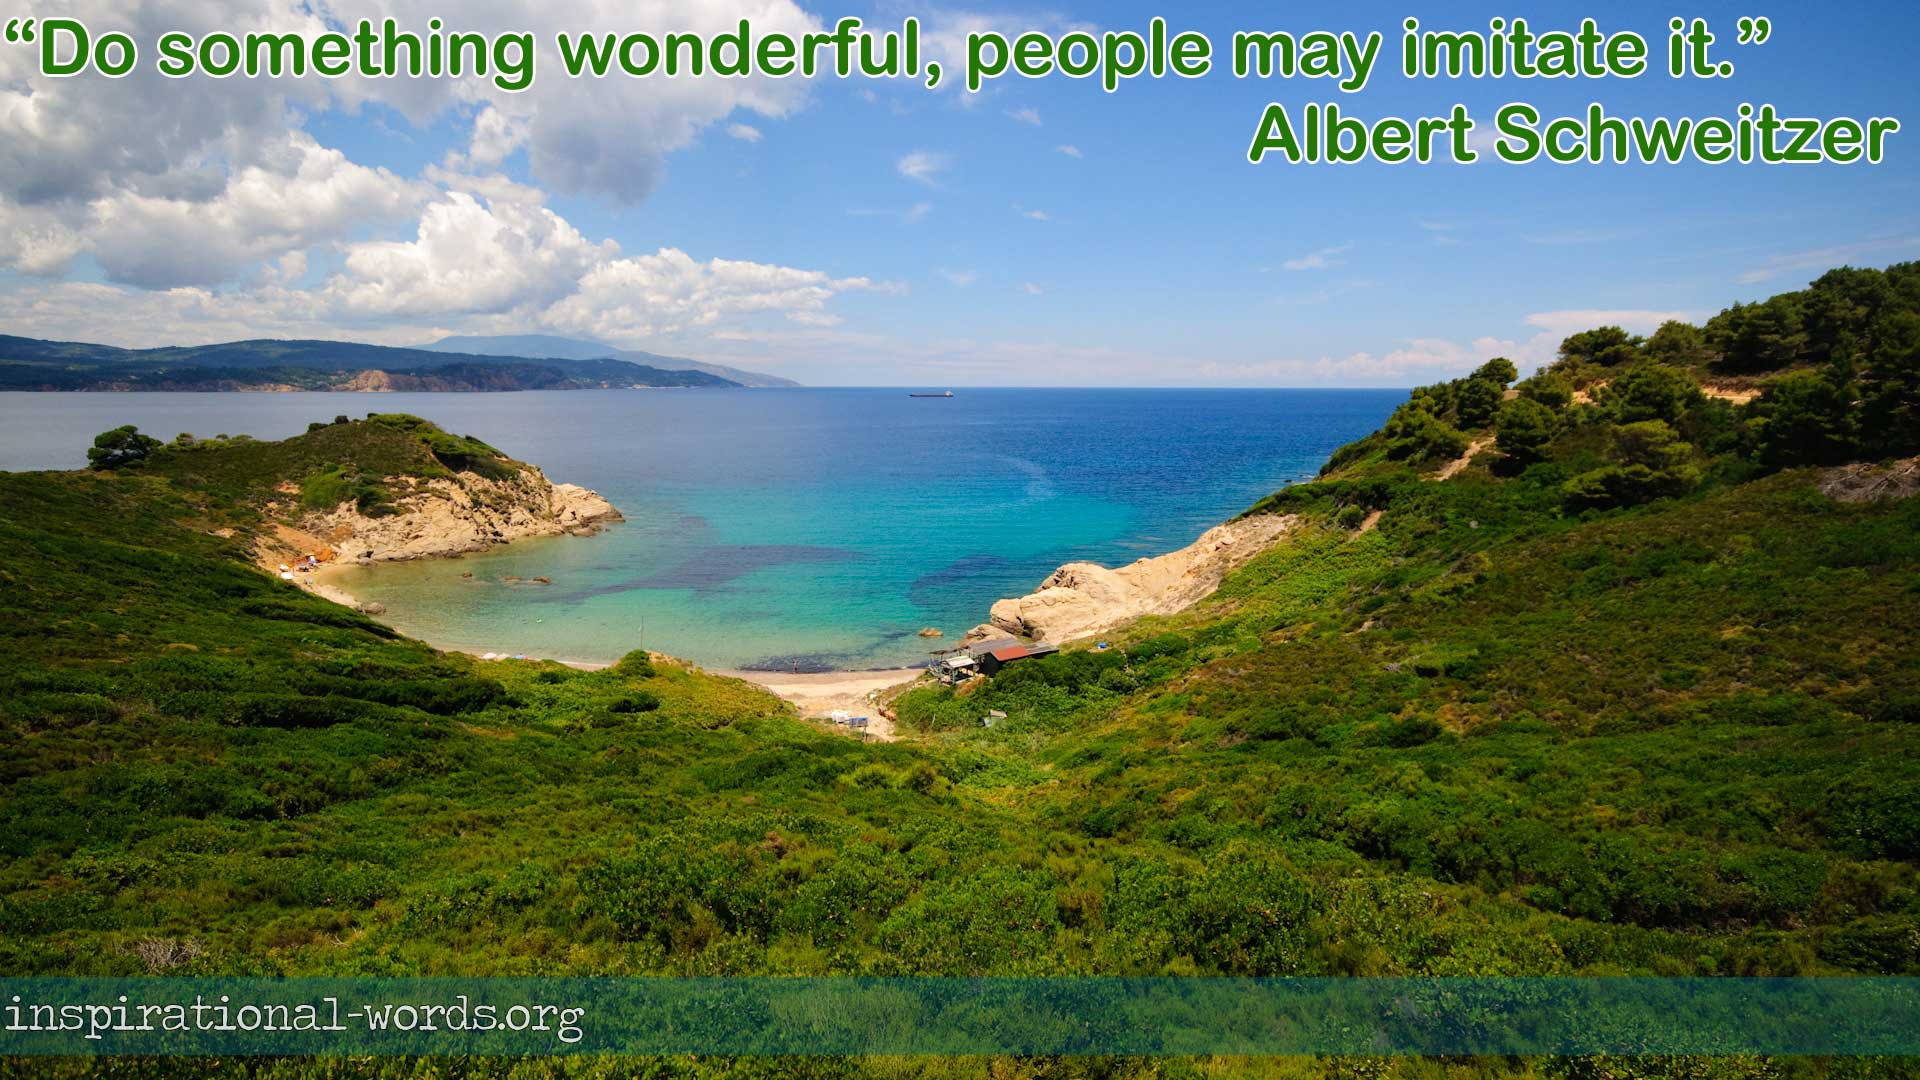 Albert Schweitzer inspirational wallpaper